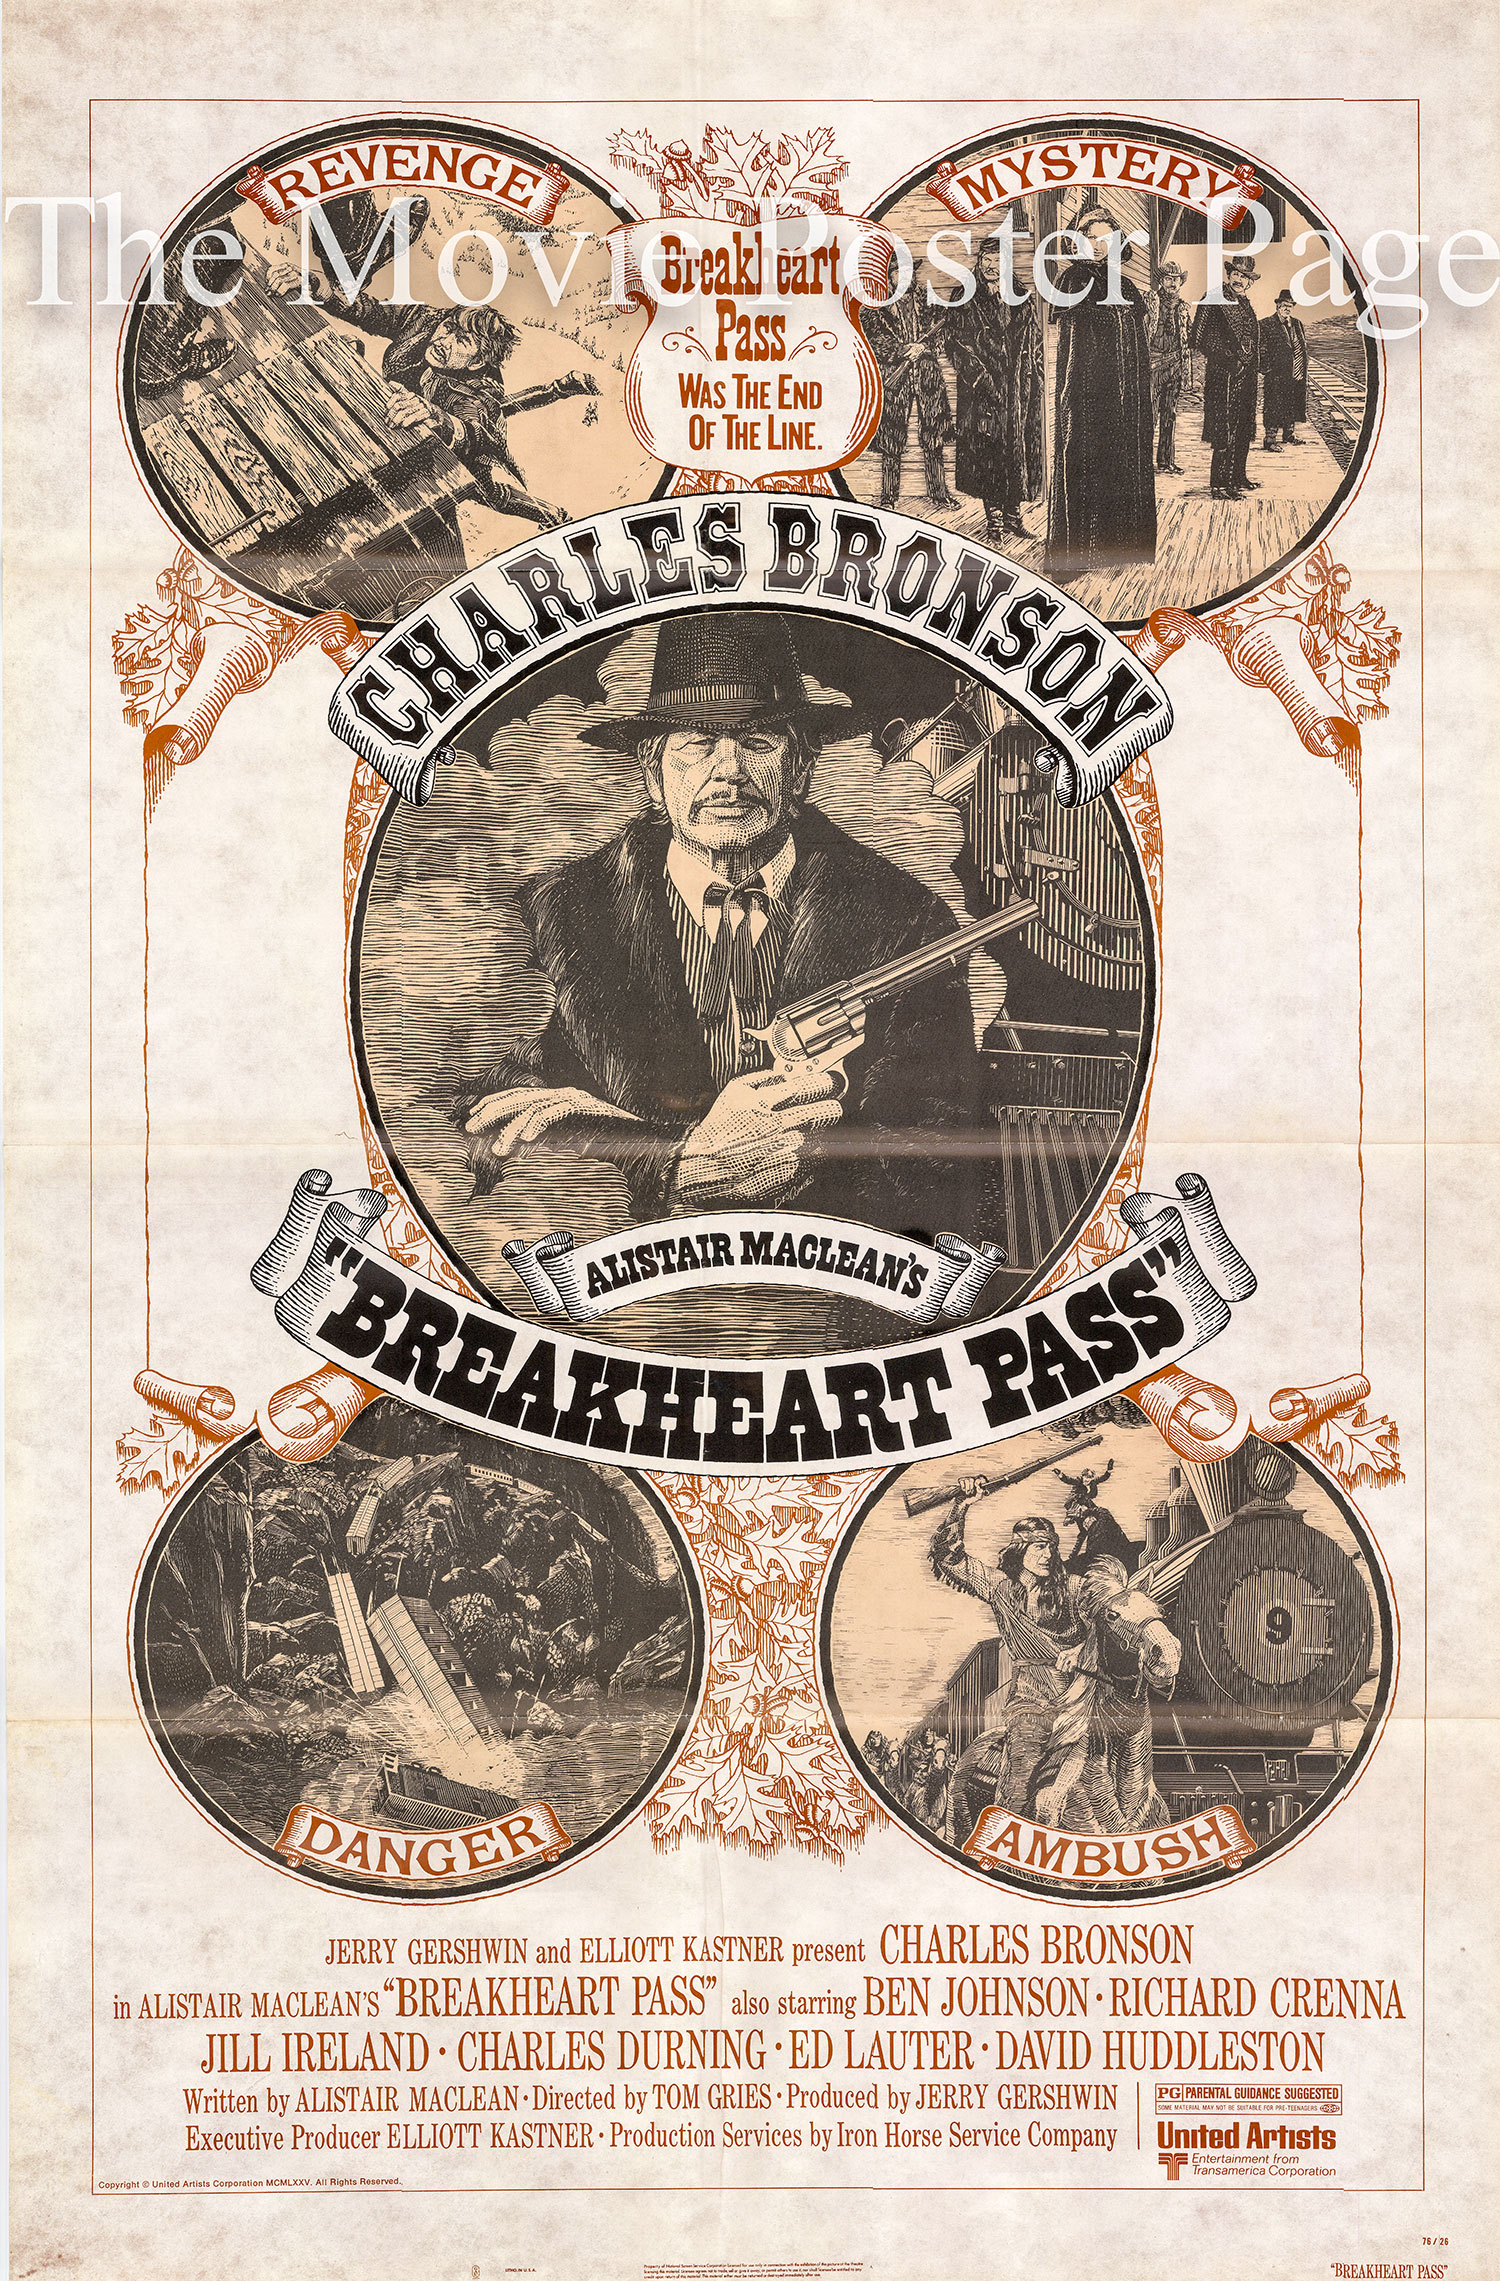 Pictured is a US one-sheet poster for the 1976 Tom Gries film Breakheart Pass starring Charles Bronson as Deakin.